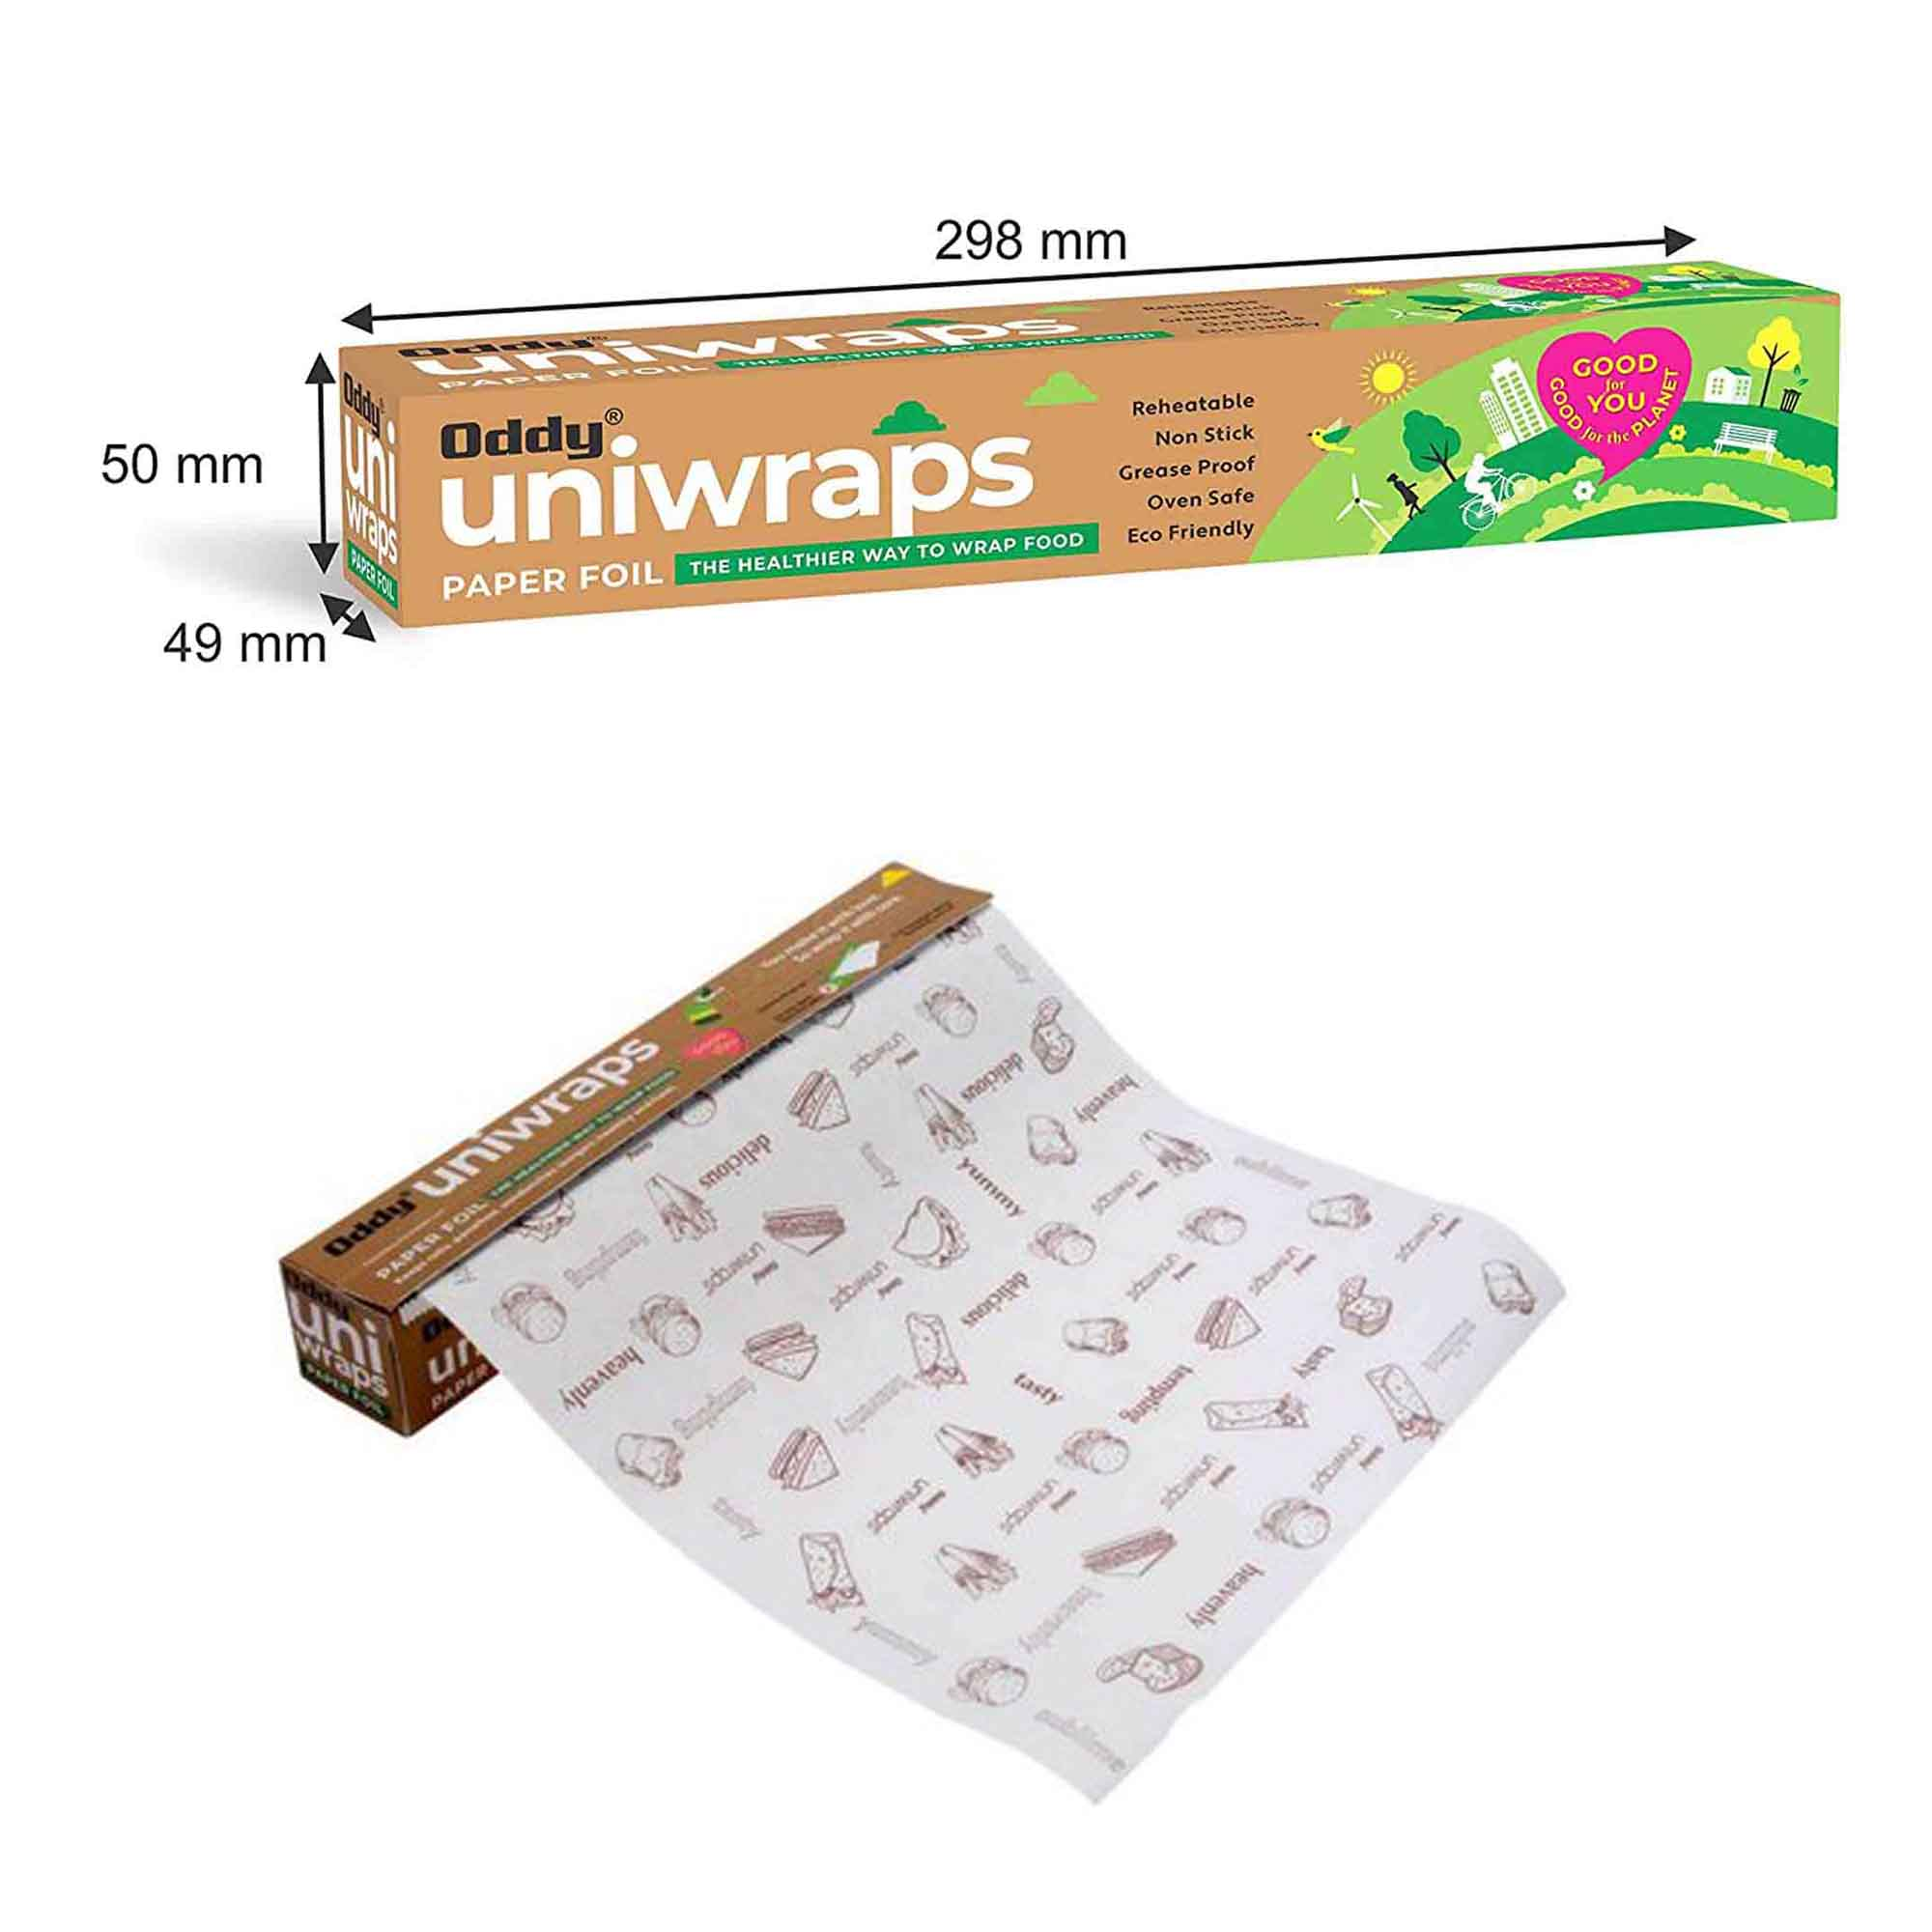 ODDY UNIWRAPS FOOD WRAPPING FOIL 20 MTR. SINGLE PACK